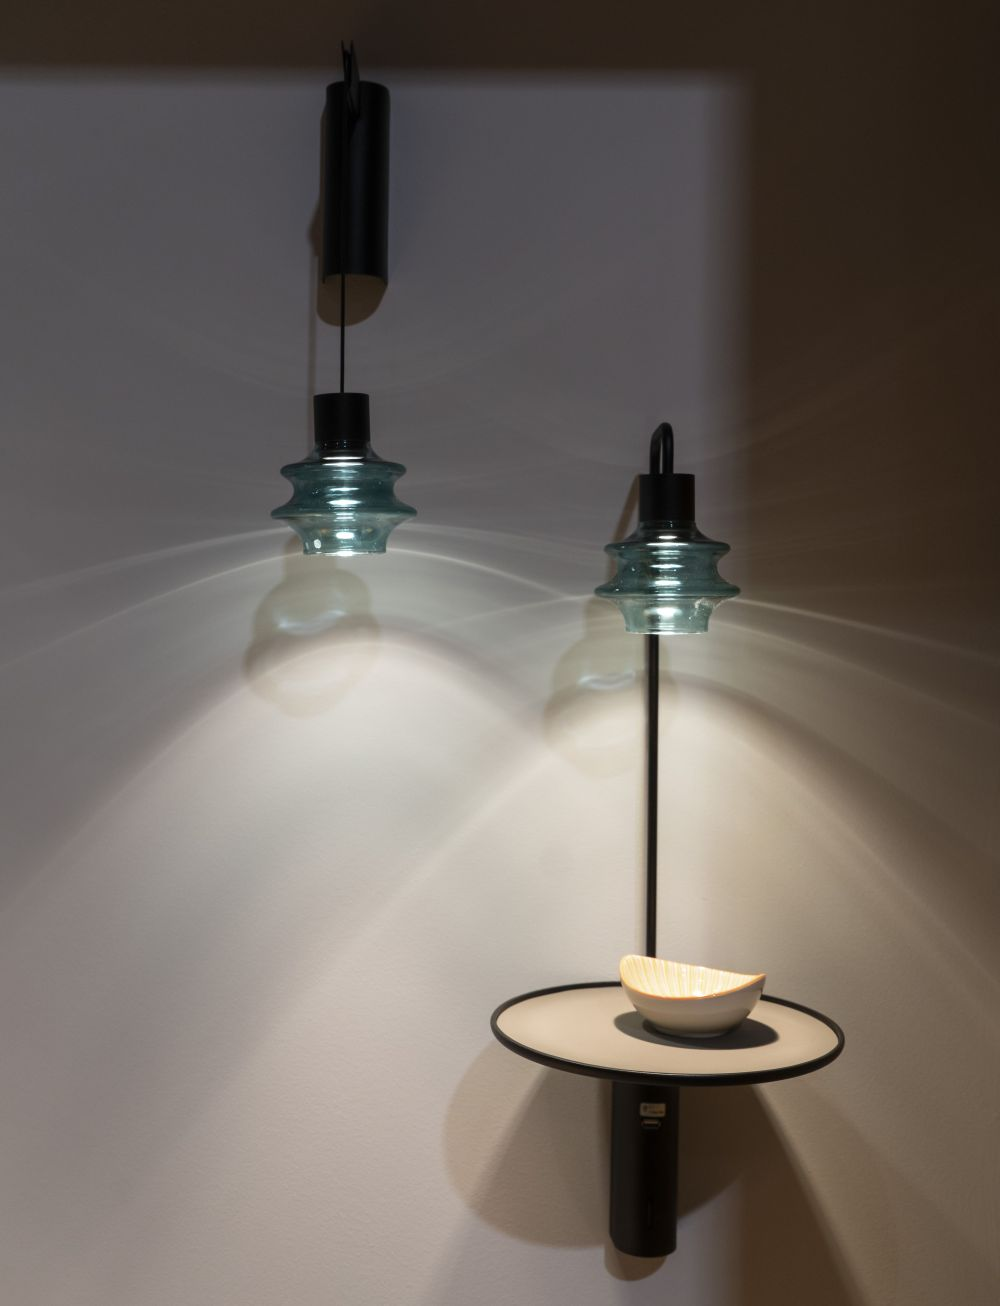 The drip is more than just a light fixture it takes wall lamps to a new level by showing clean and minimalist lines complemented by a very versatile and